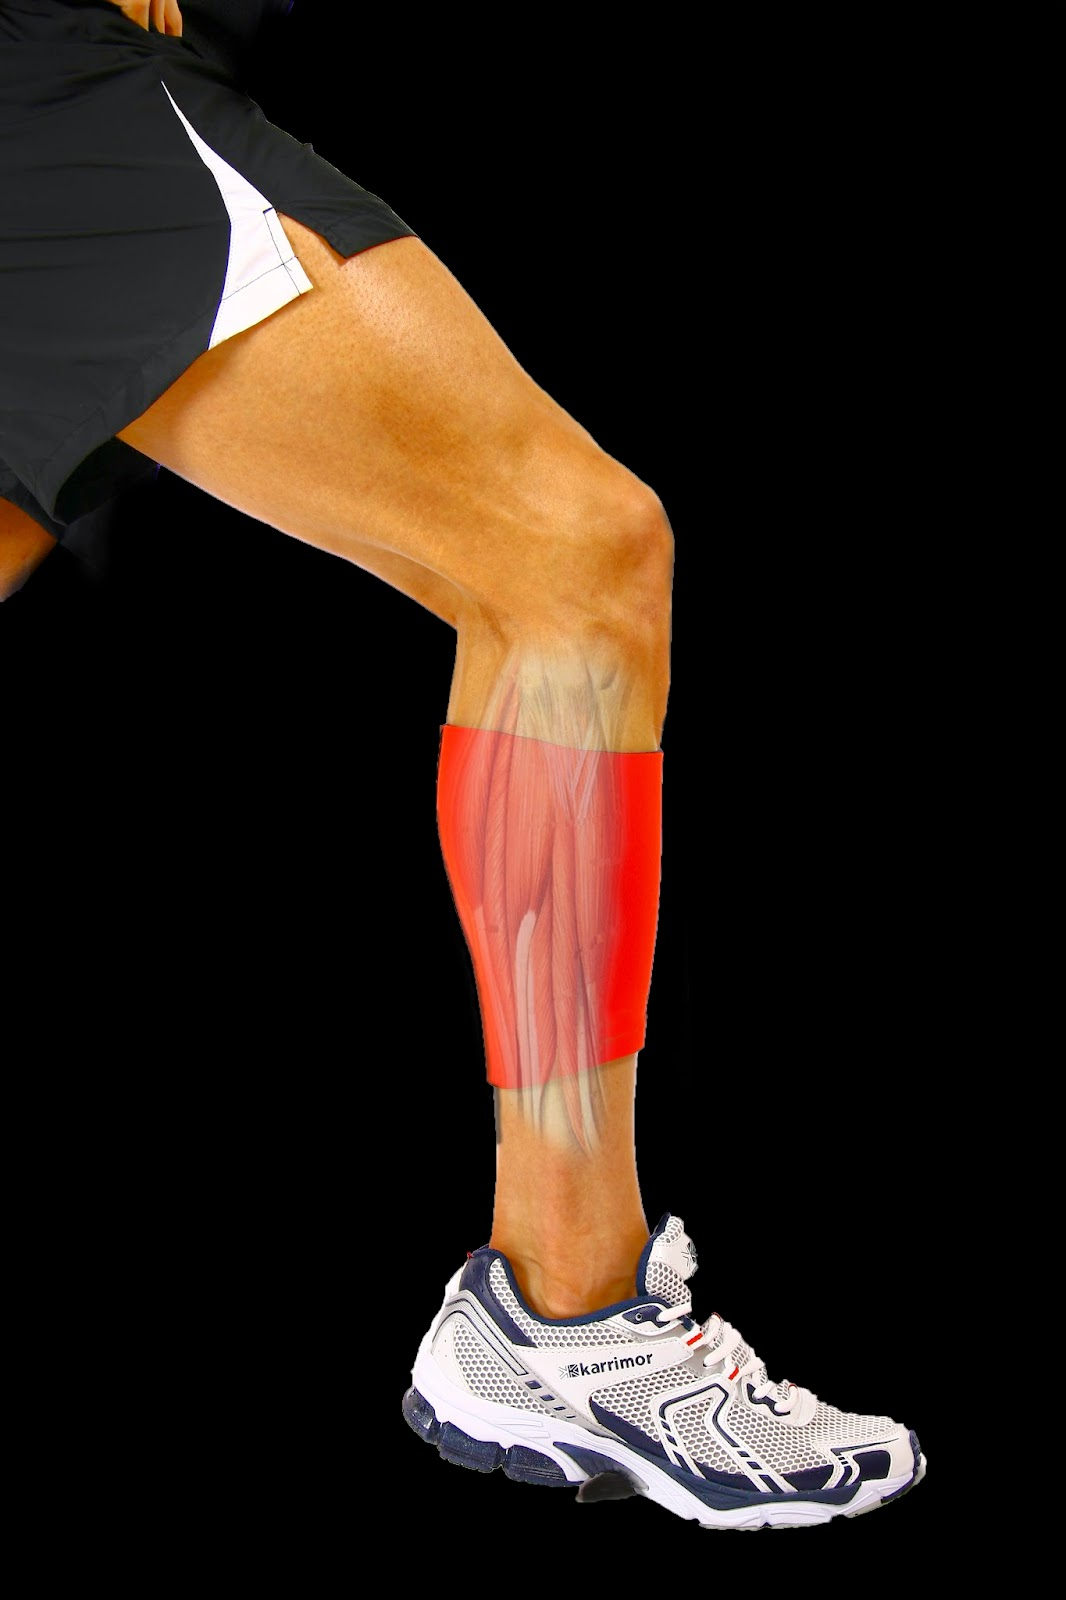 Compression Support Treatment of Calf Injury